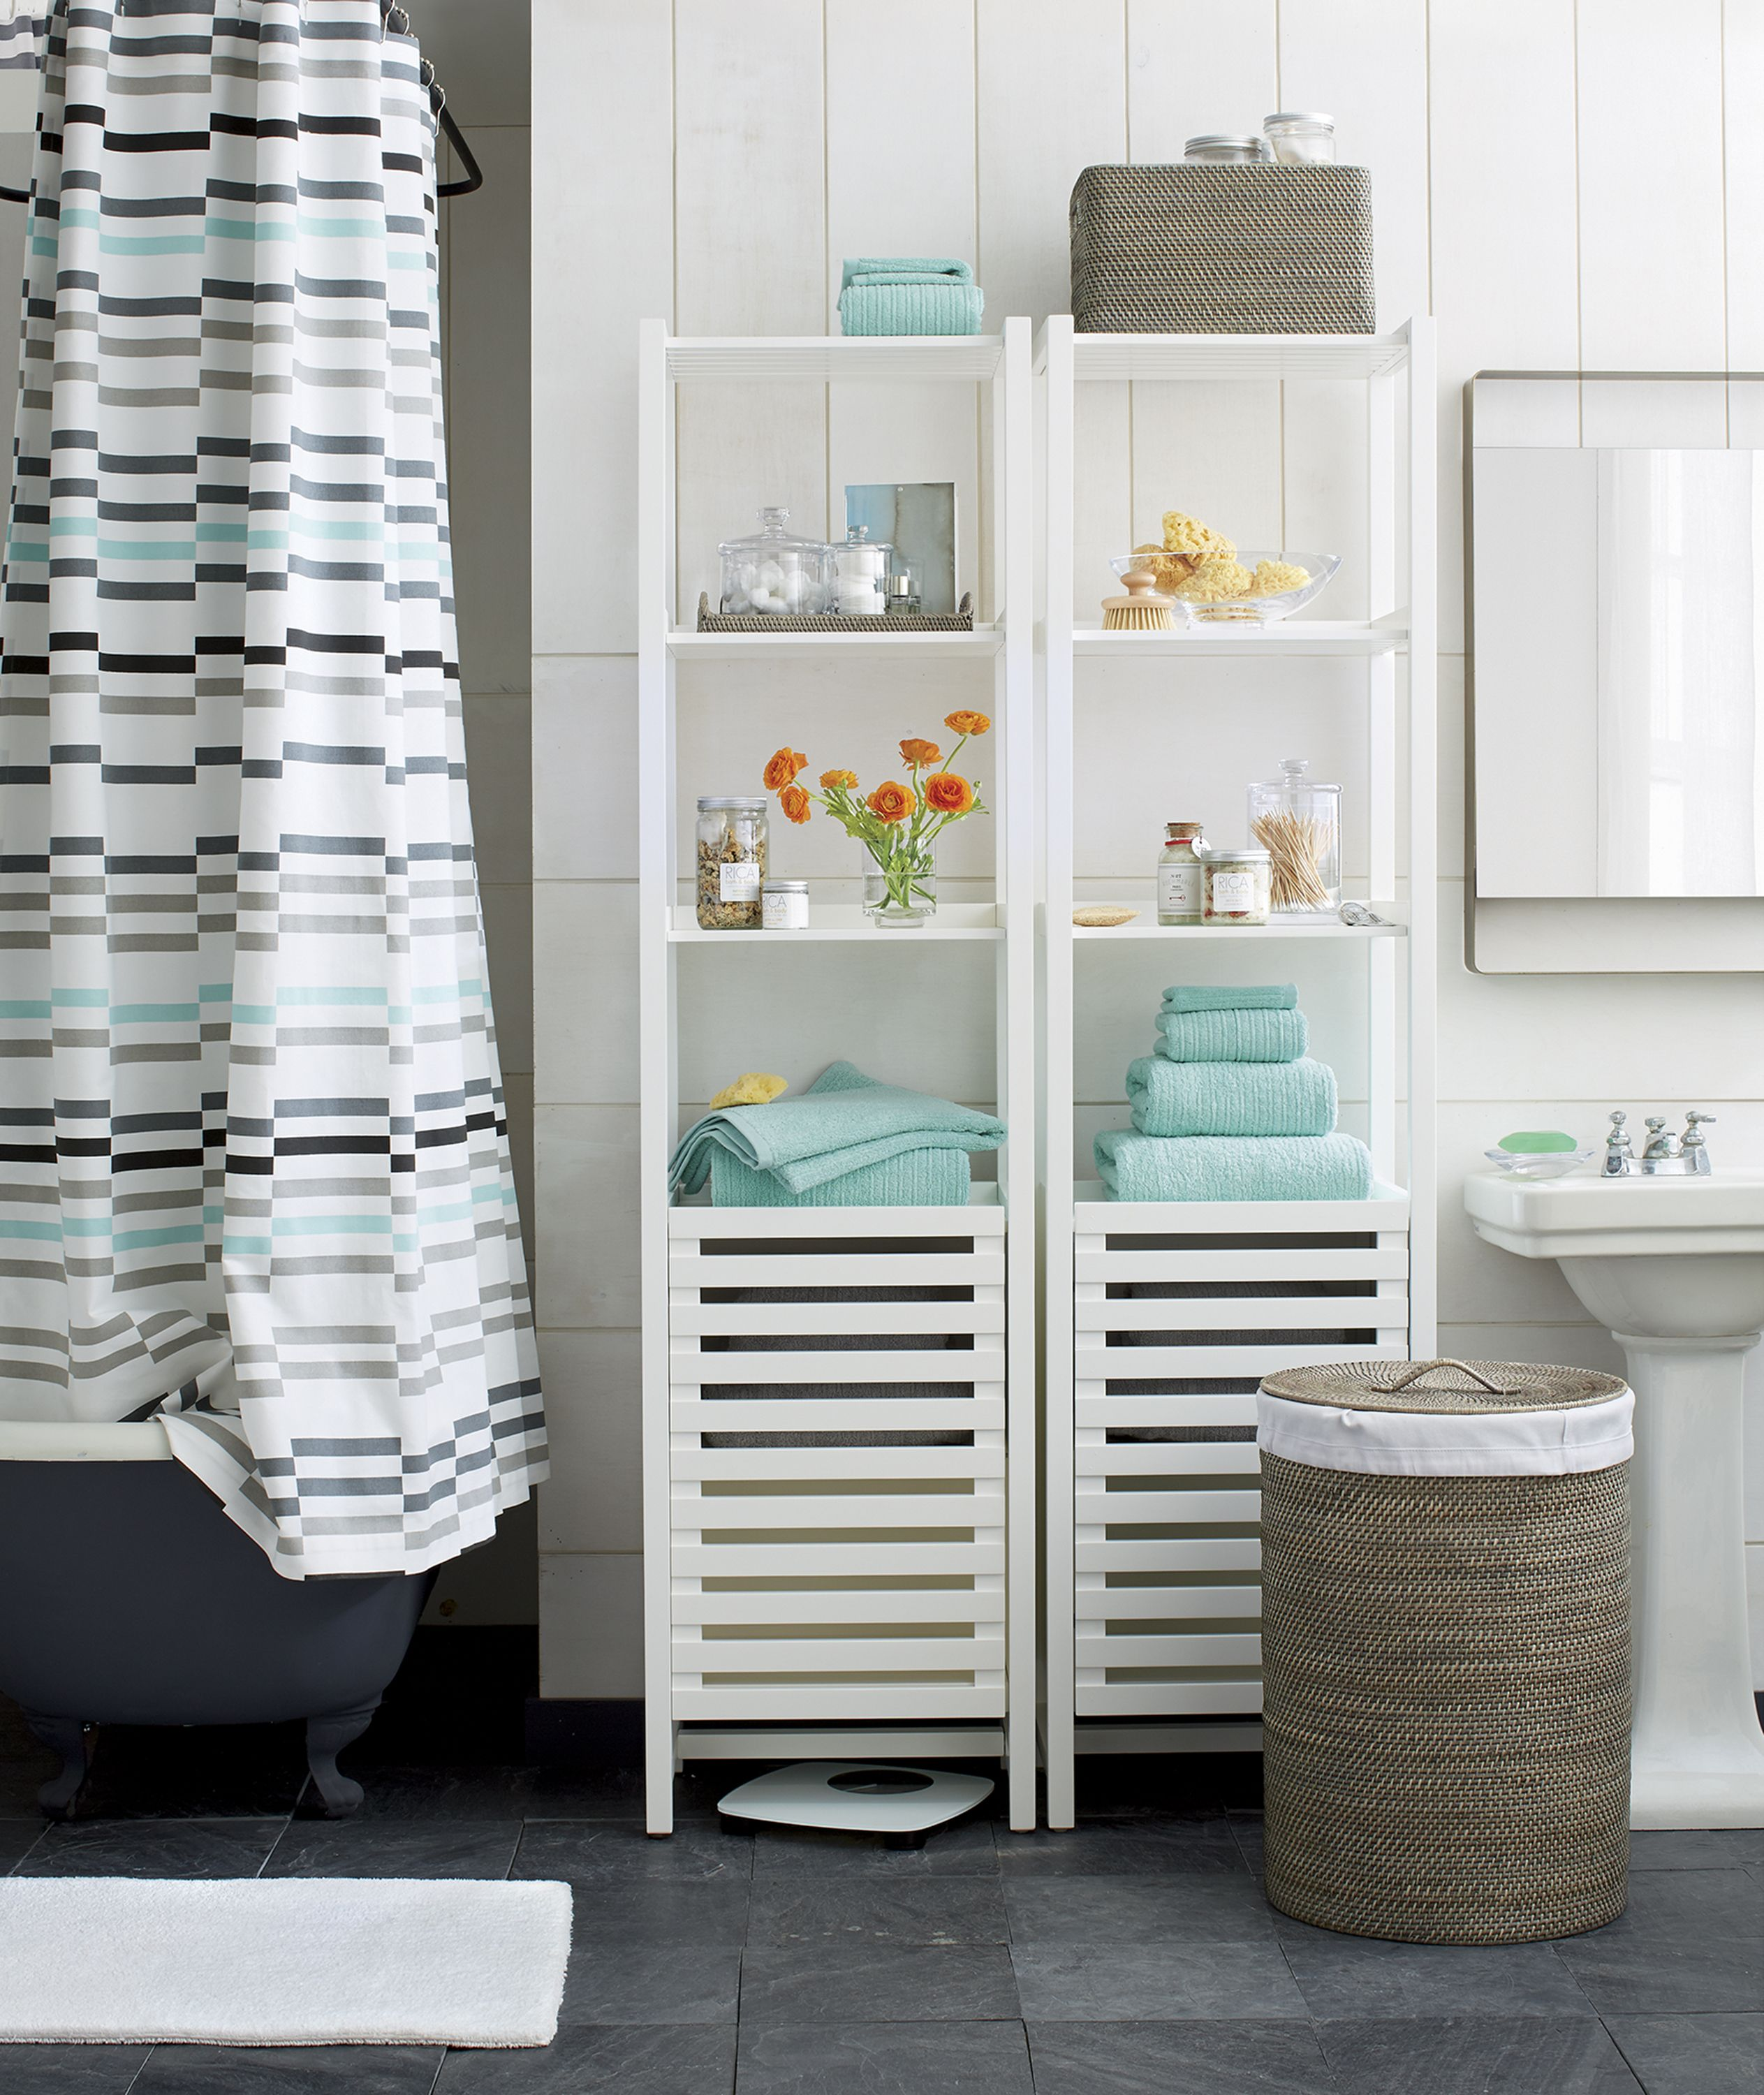 Banya White Bath Tower | Open shelves, Bath accessories and Small spaces